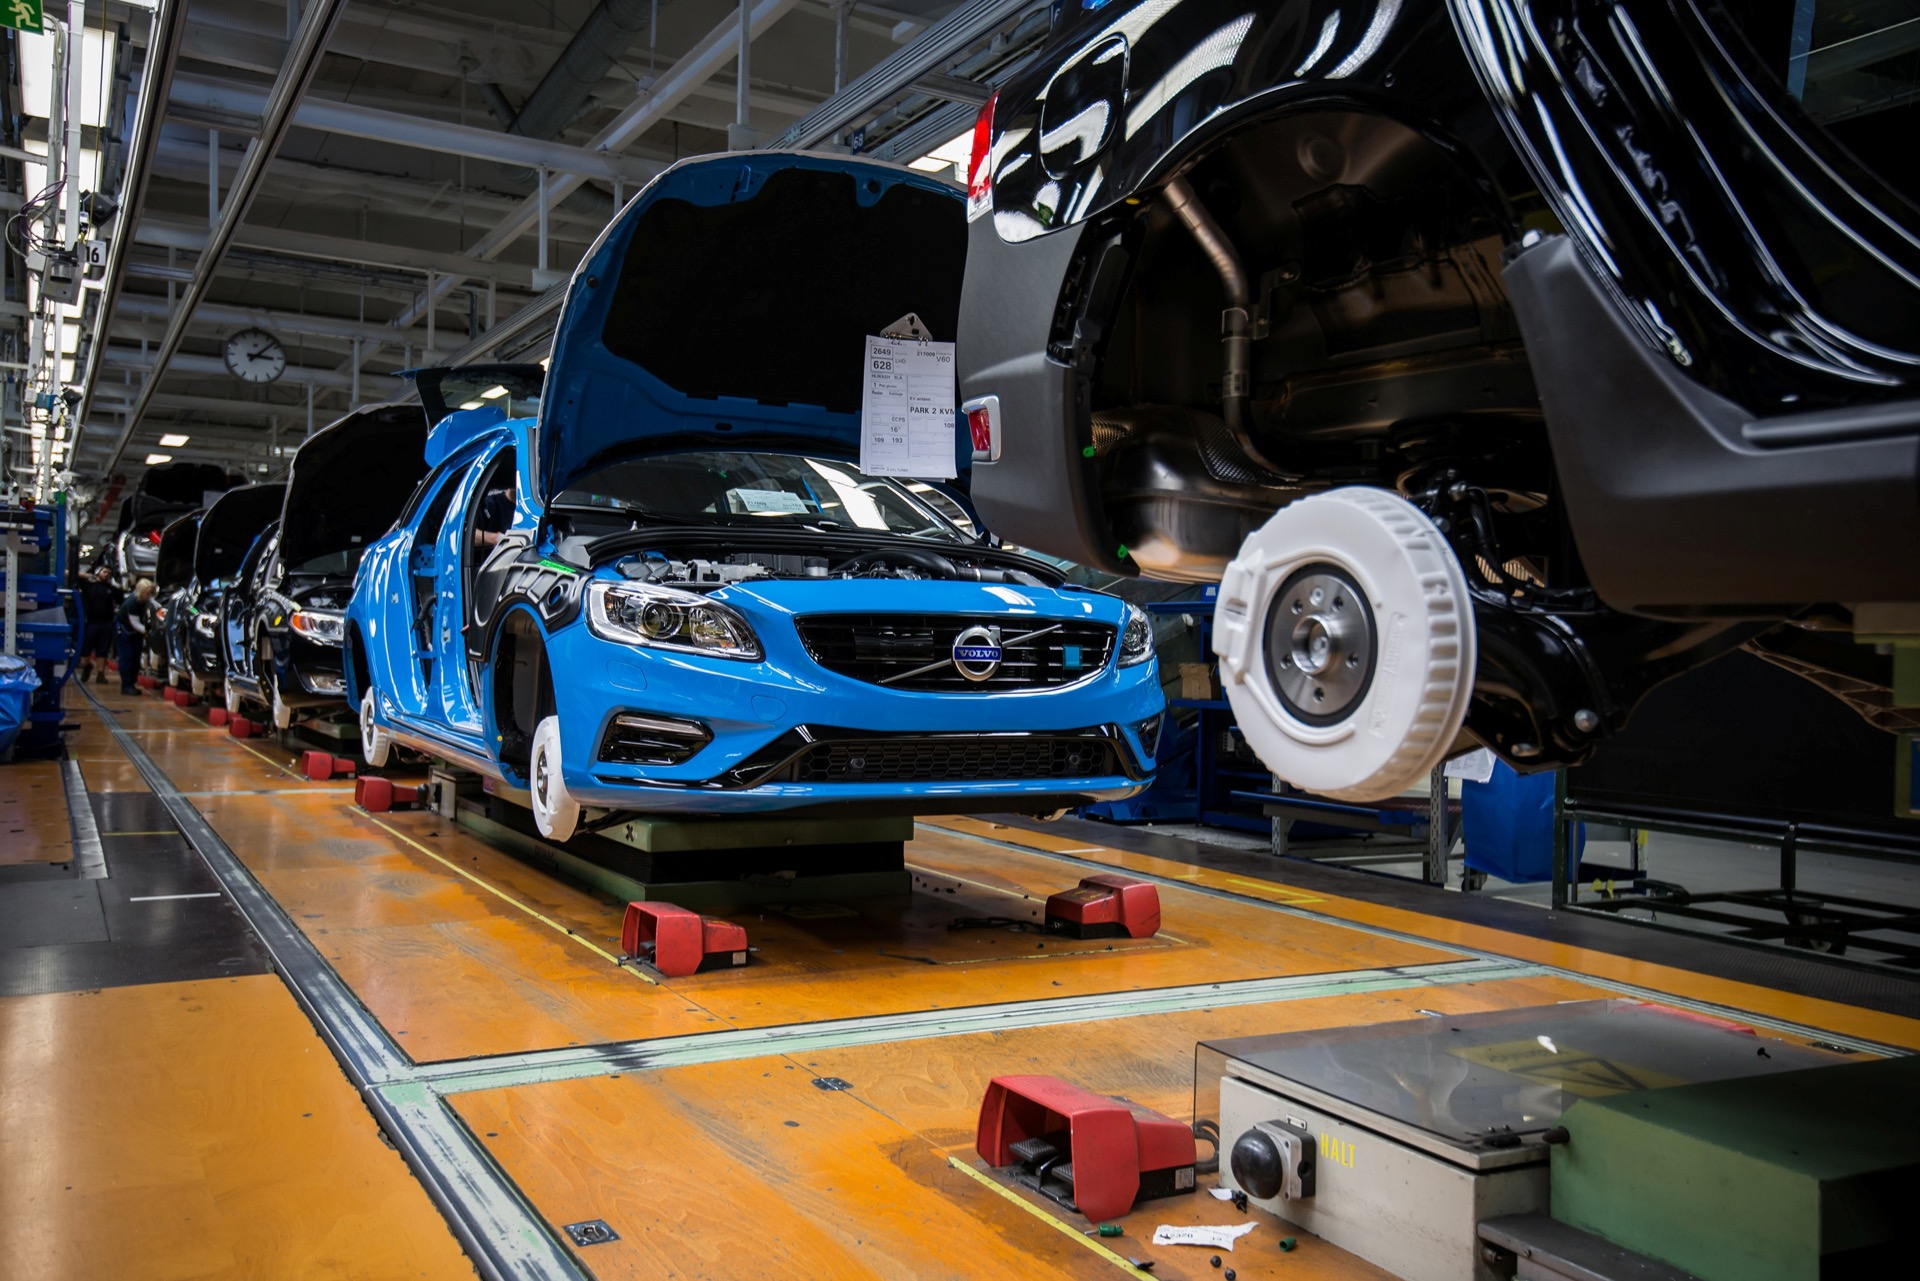 Volvo Cars Starts Production Of The New Volvo S60 And V60 Polestar -  2014, 2015, 2015 S60, 2015 V60, Exterior, Images, Life Style, Manufacturing, S60, Technology, V60, Volvo